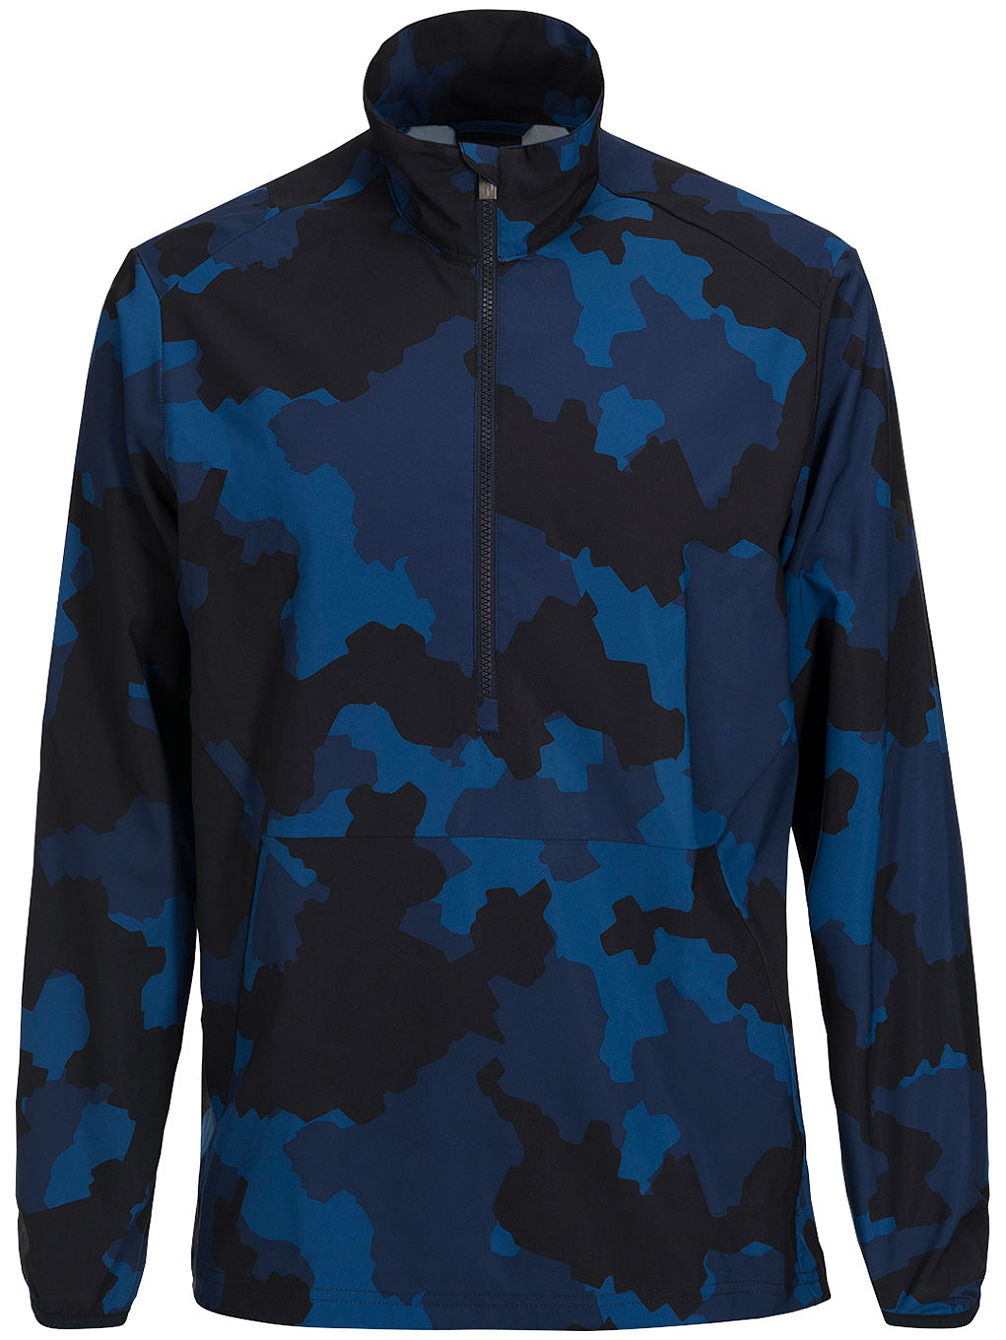 Iron Print Windbreaker